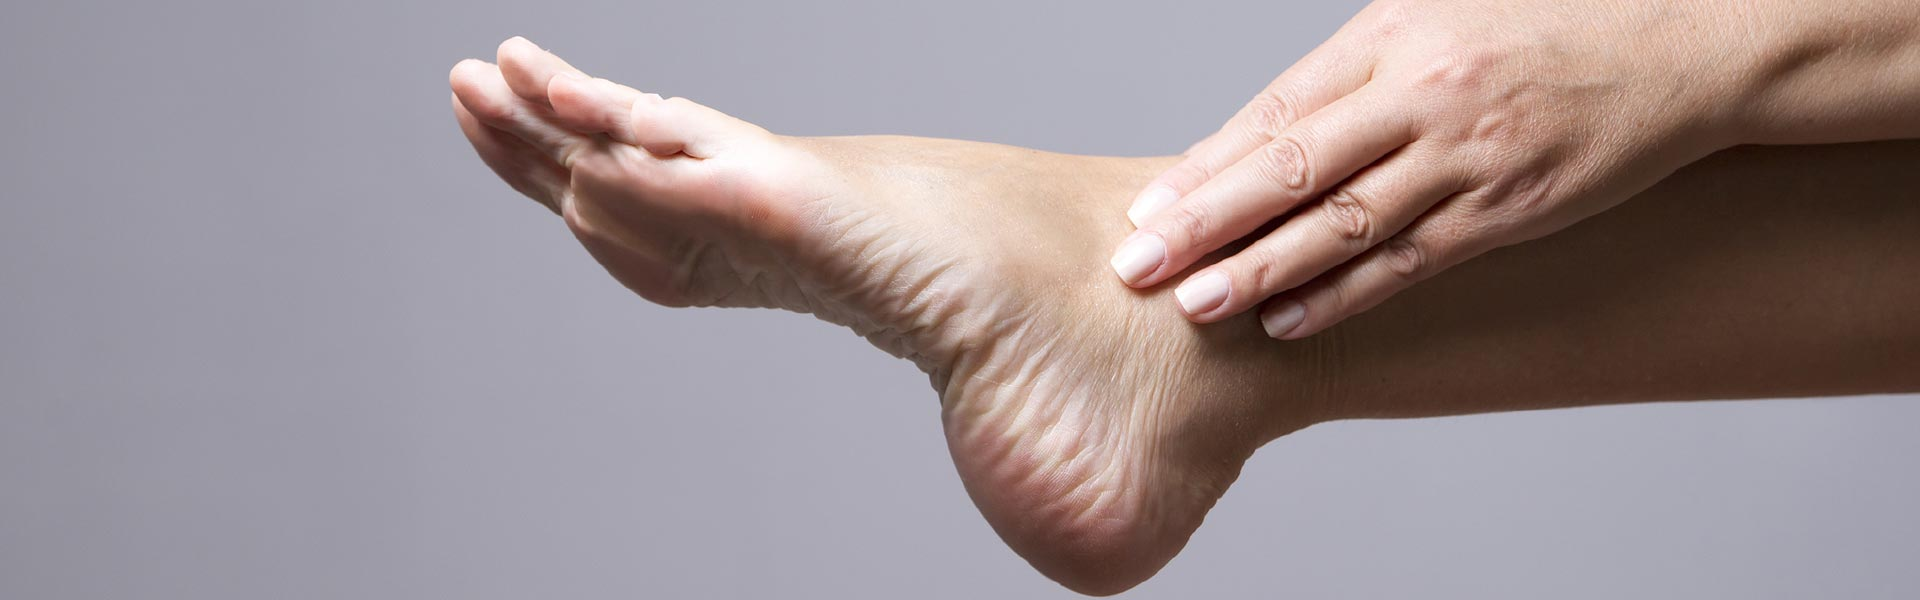 Diabetes podiatry, Geelong